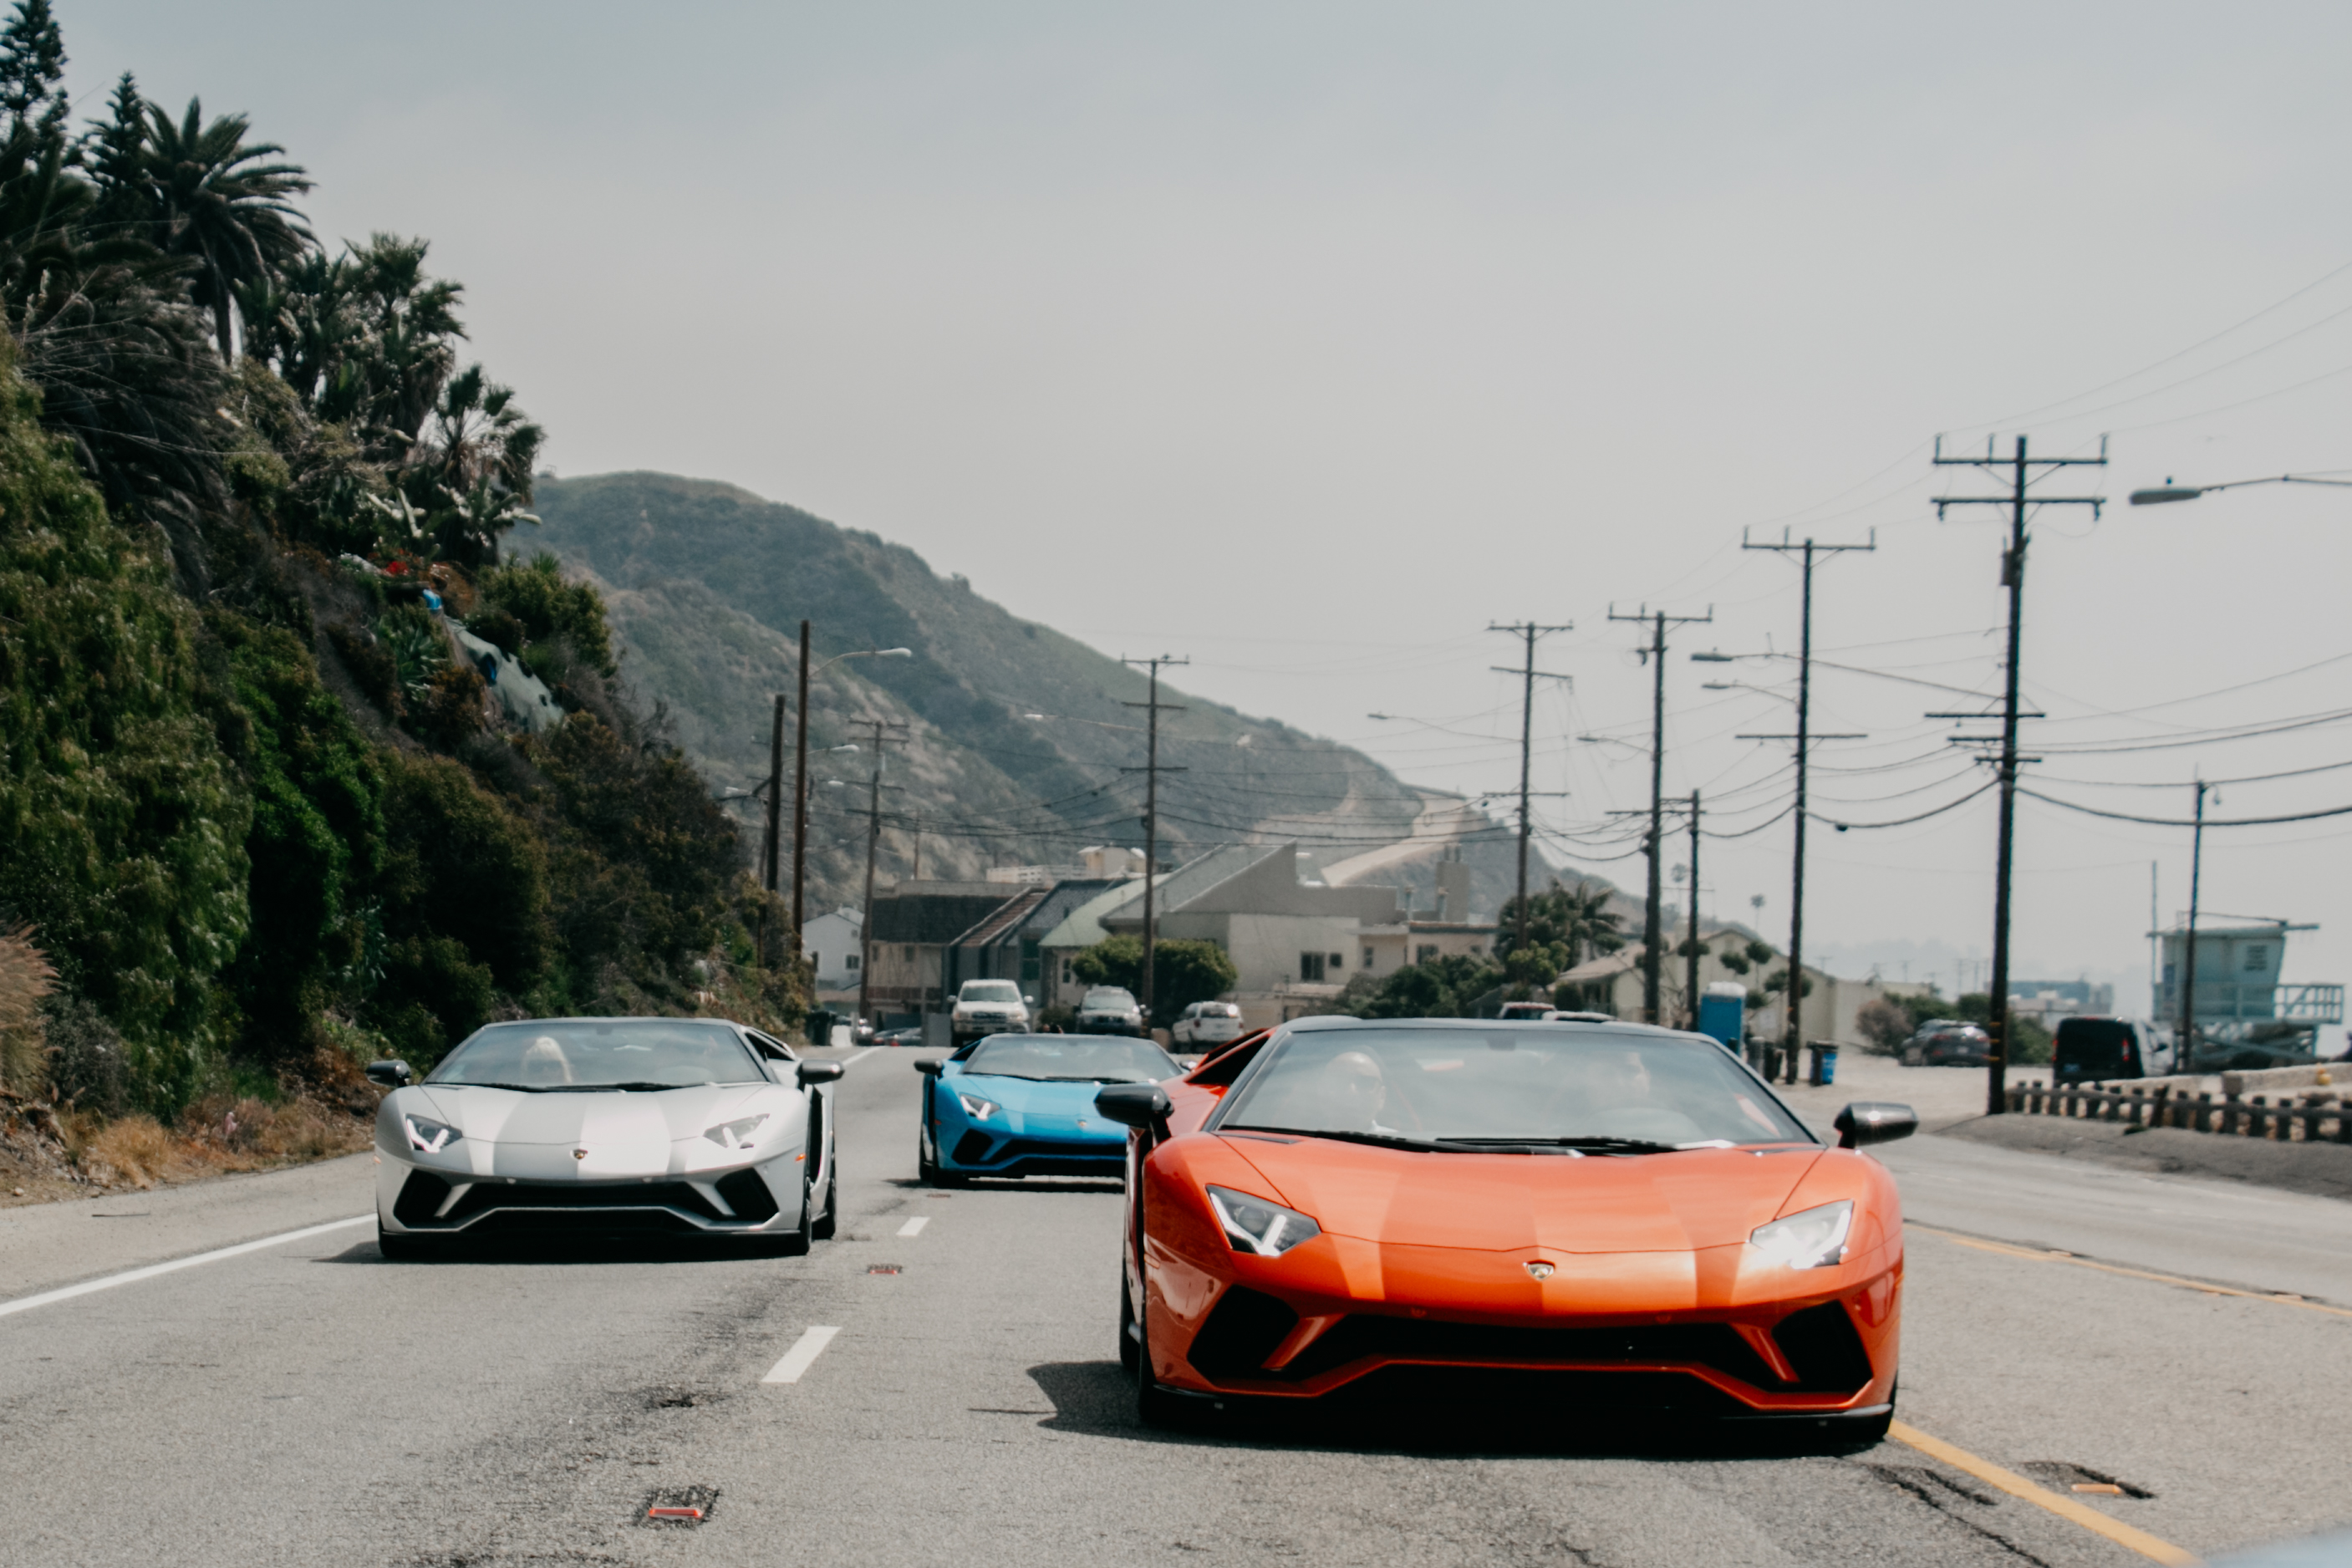 Last Week We Took A Select Few Clients Out For An Extended Test Drive In The  All New Lamborghini Aventador S Roadster! Seeing That Weu0027re Based Here In  Sunny ...